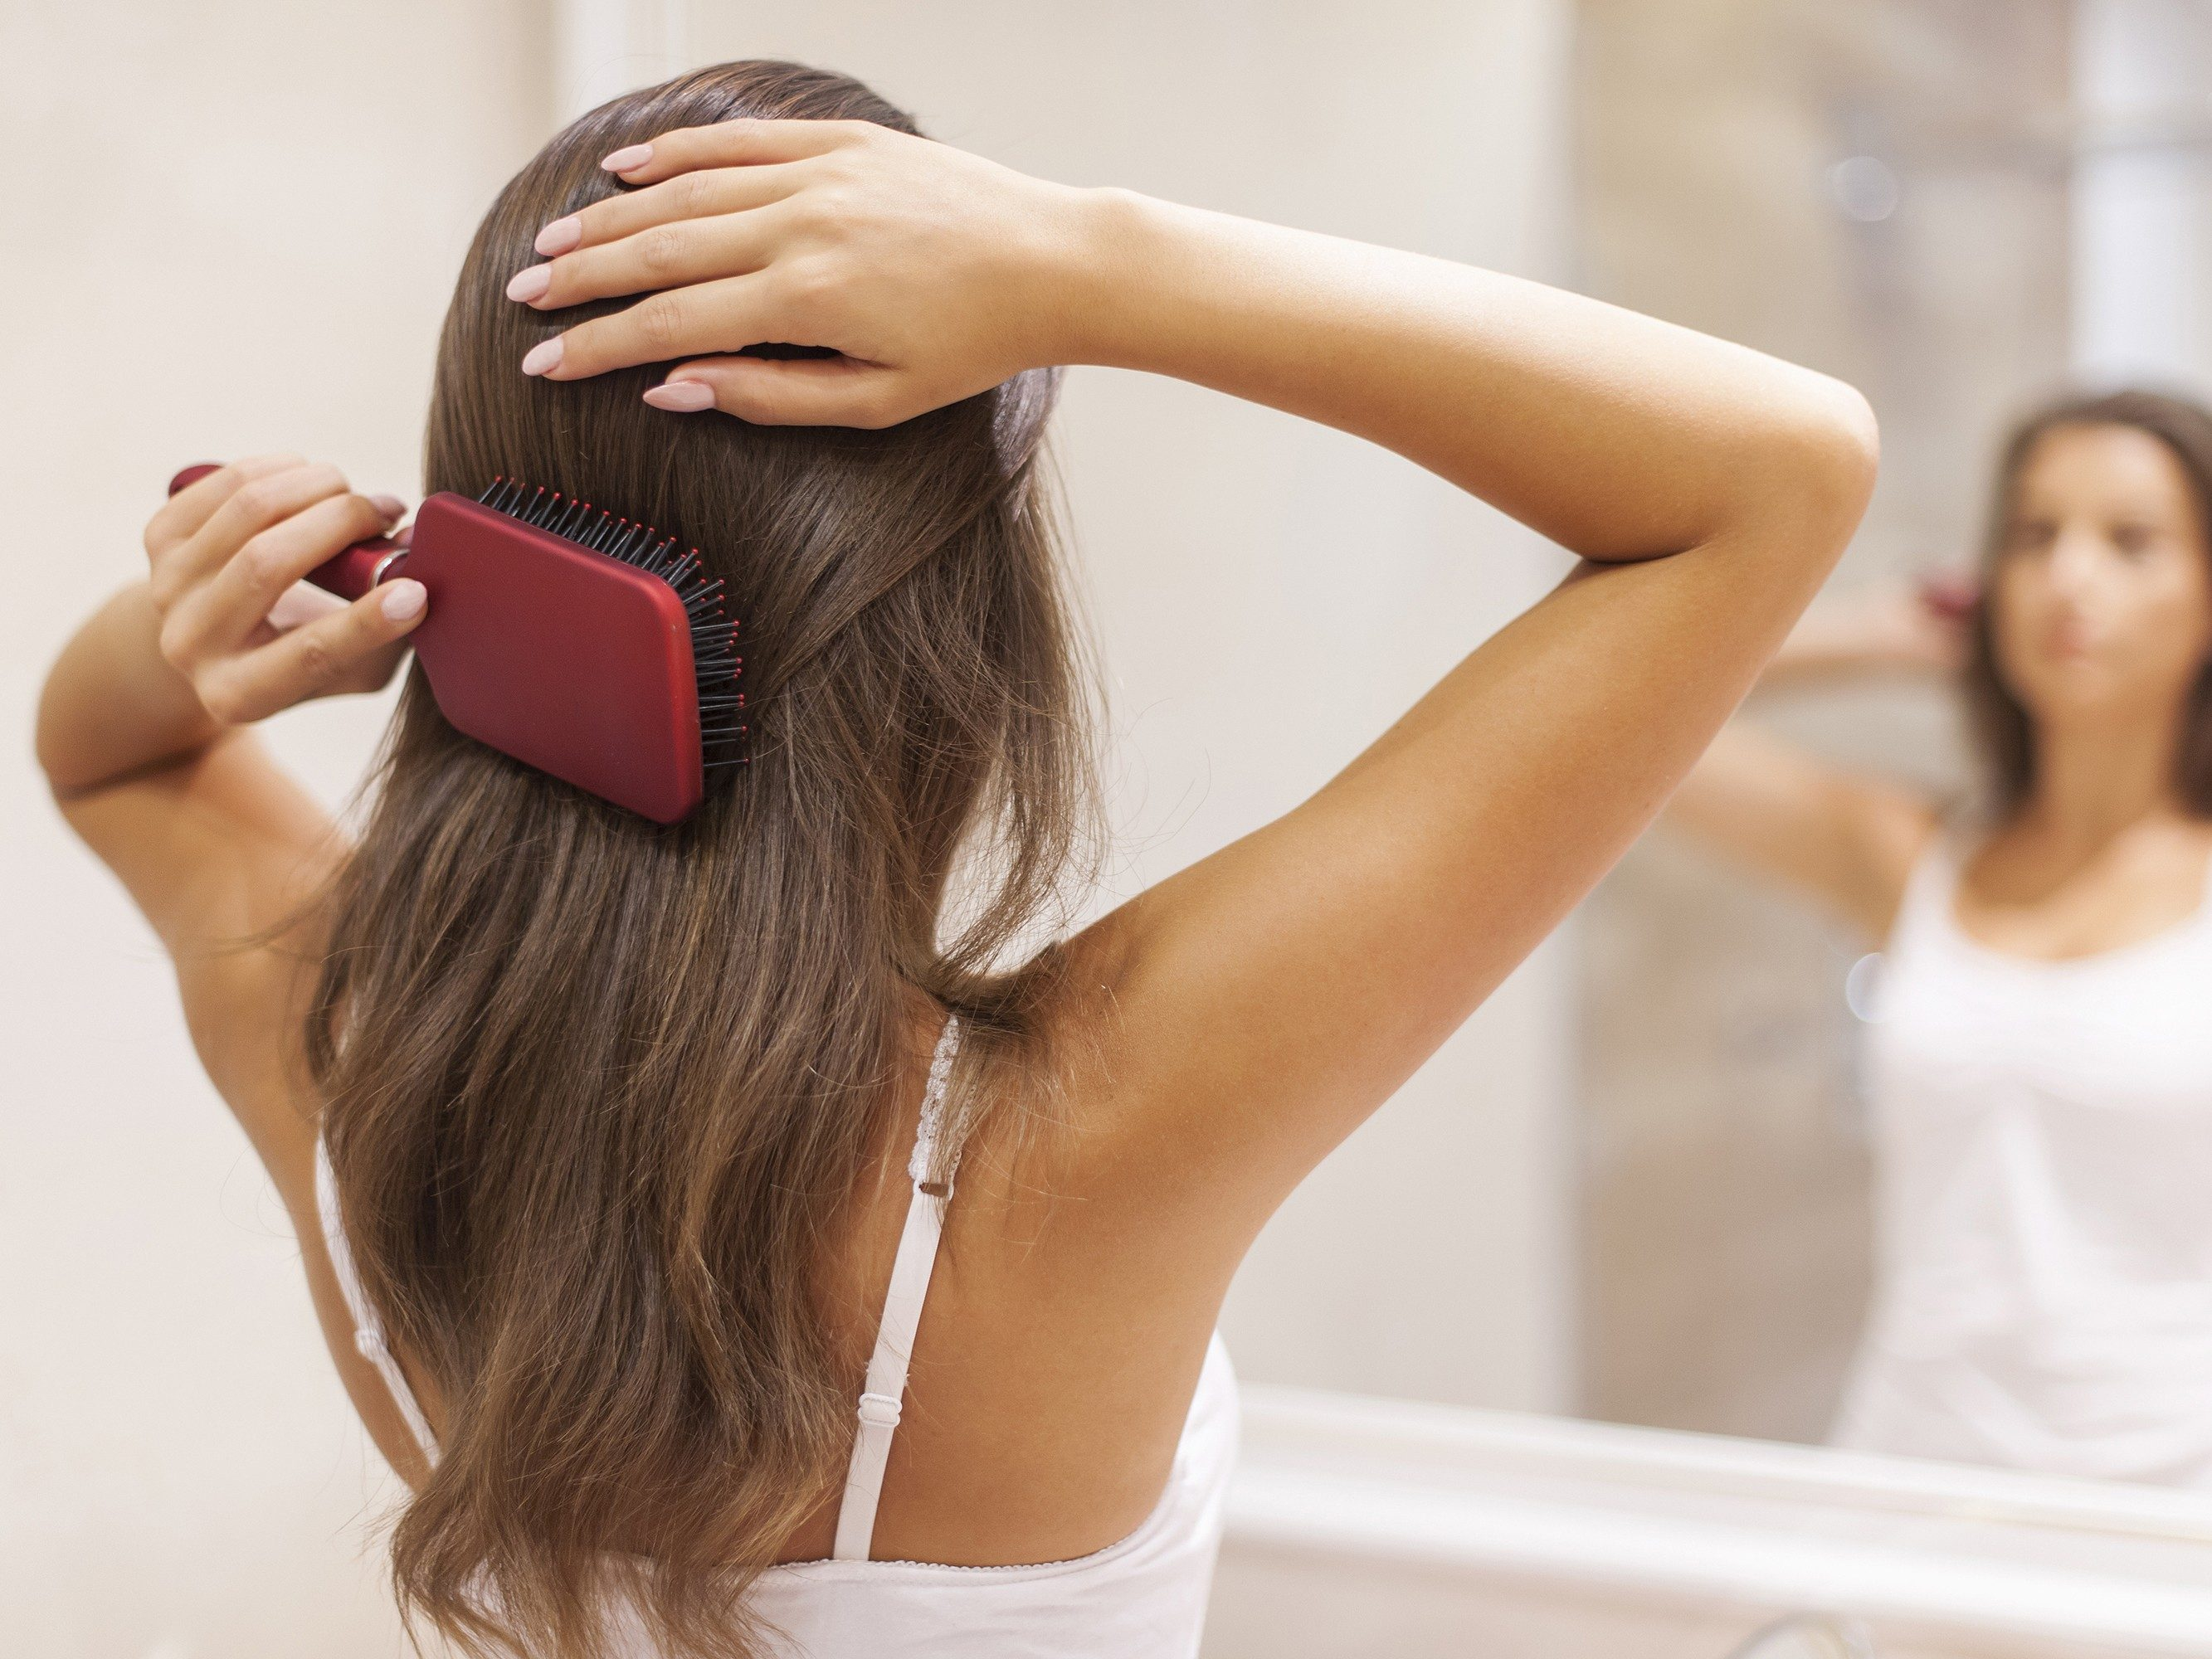 Dandruff solution #3: Brush your hair (a lot)